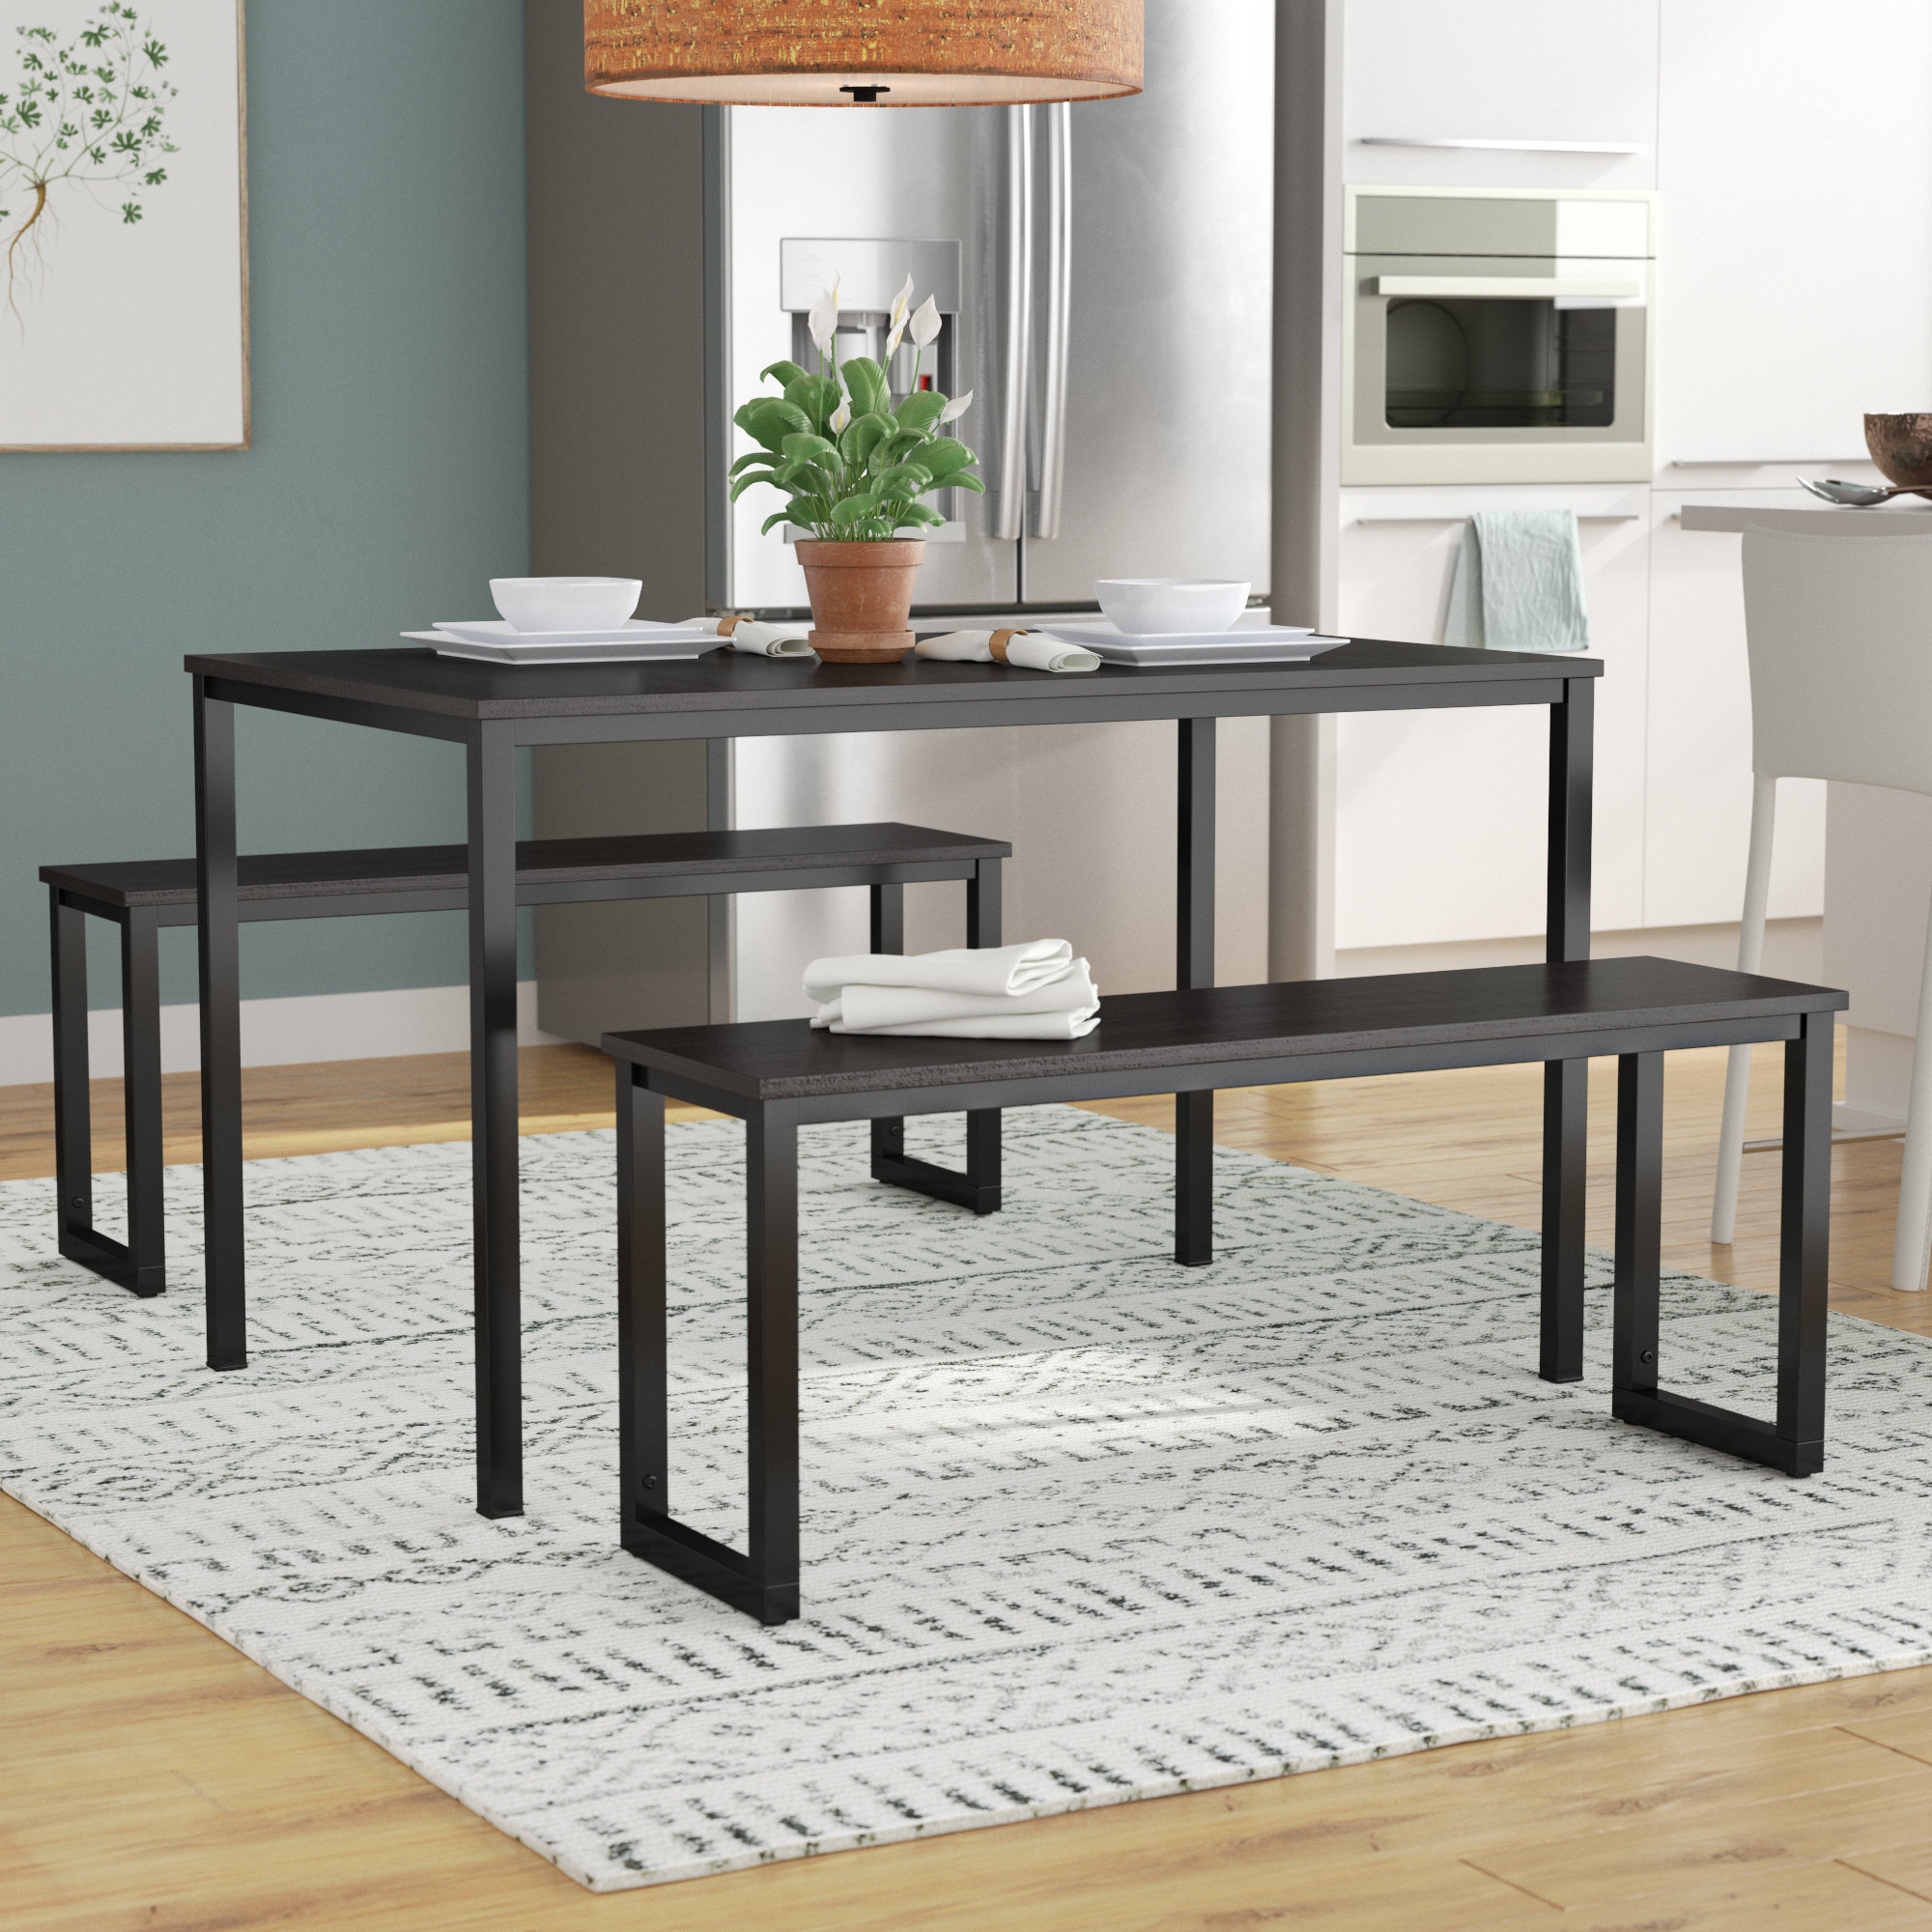 Inspiration about Wayfair.ca Pertaining To Popular Maynard 5 Piece Dining Sets (#17 of 20)